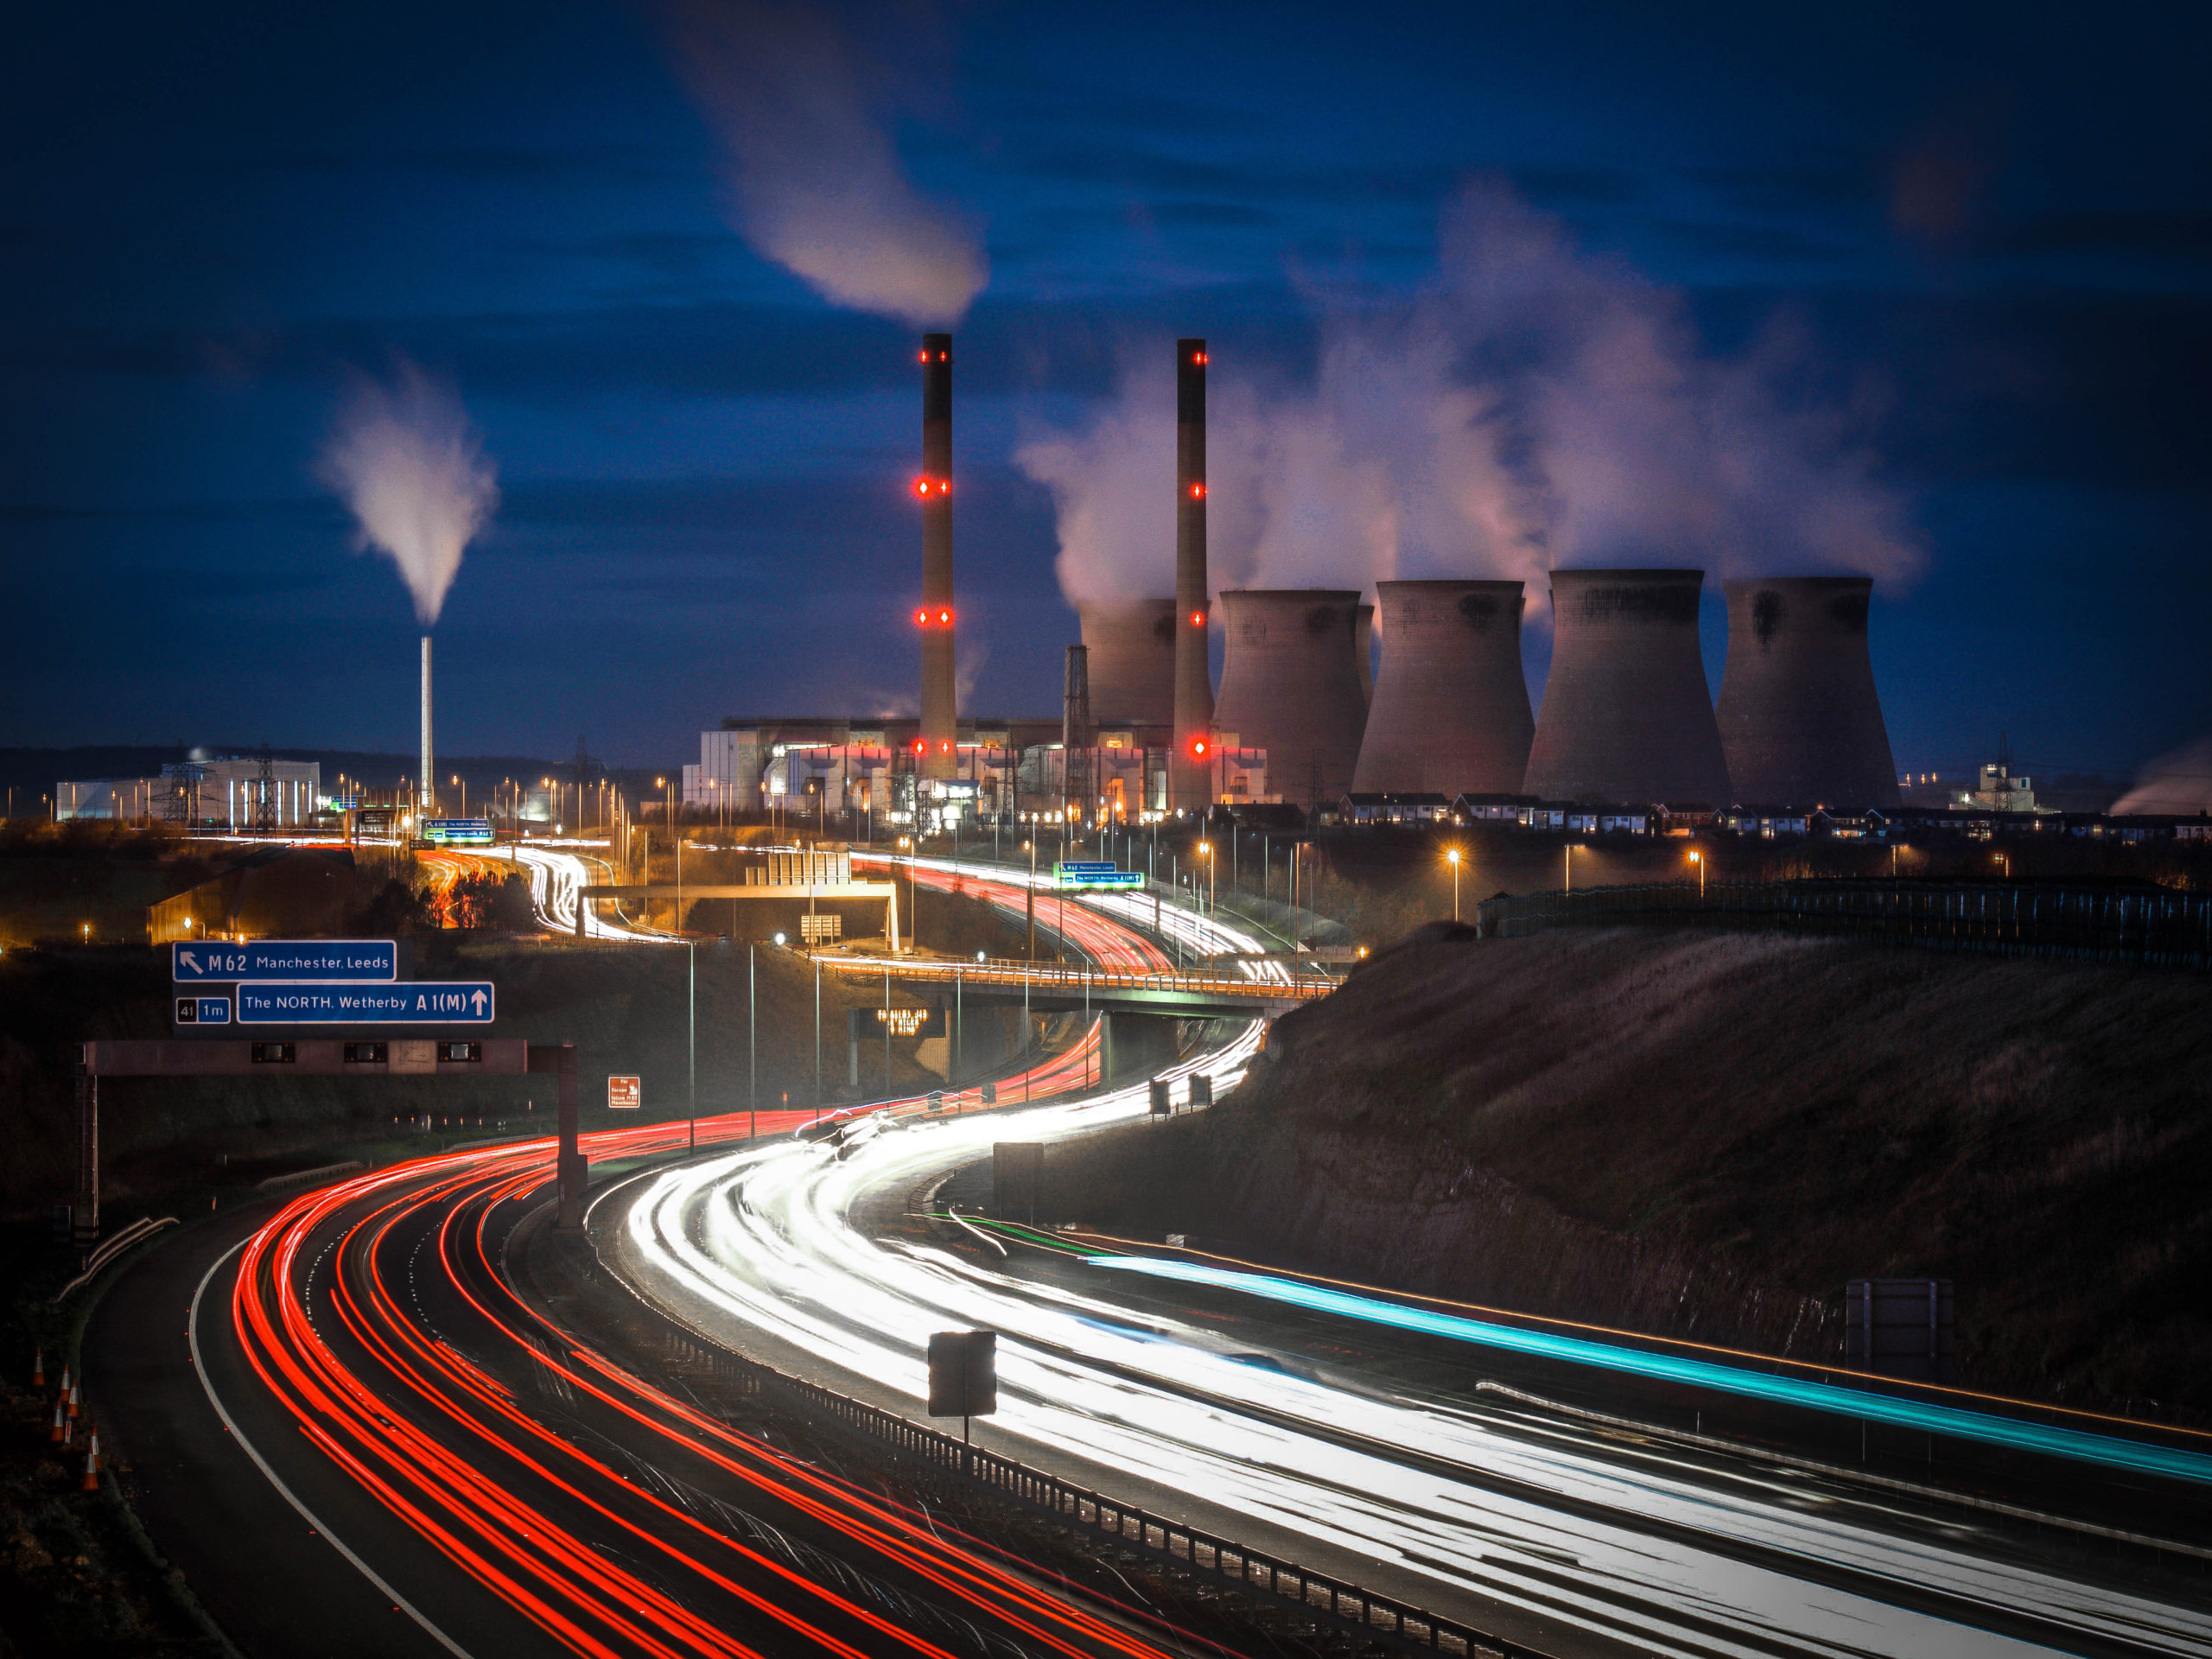 Blog: Nuclear energy: An outlook on radioactive waste management